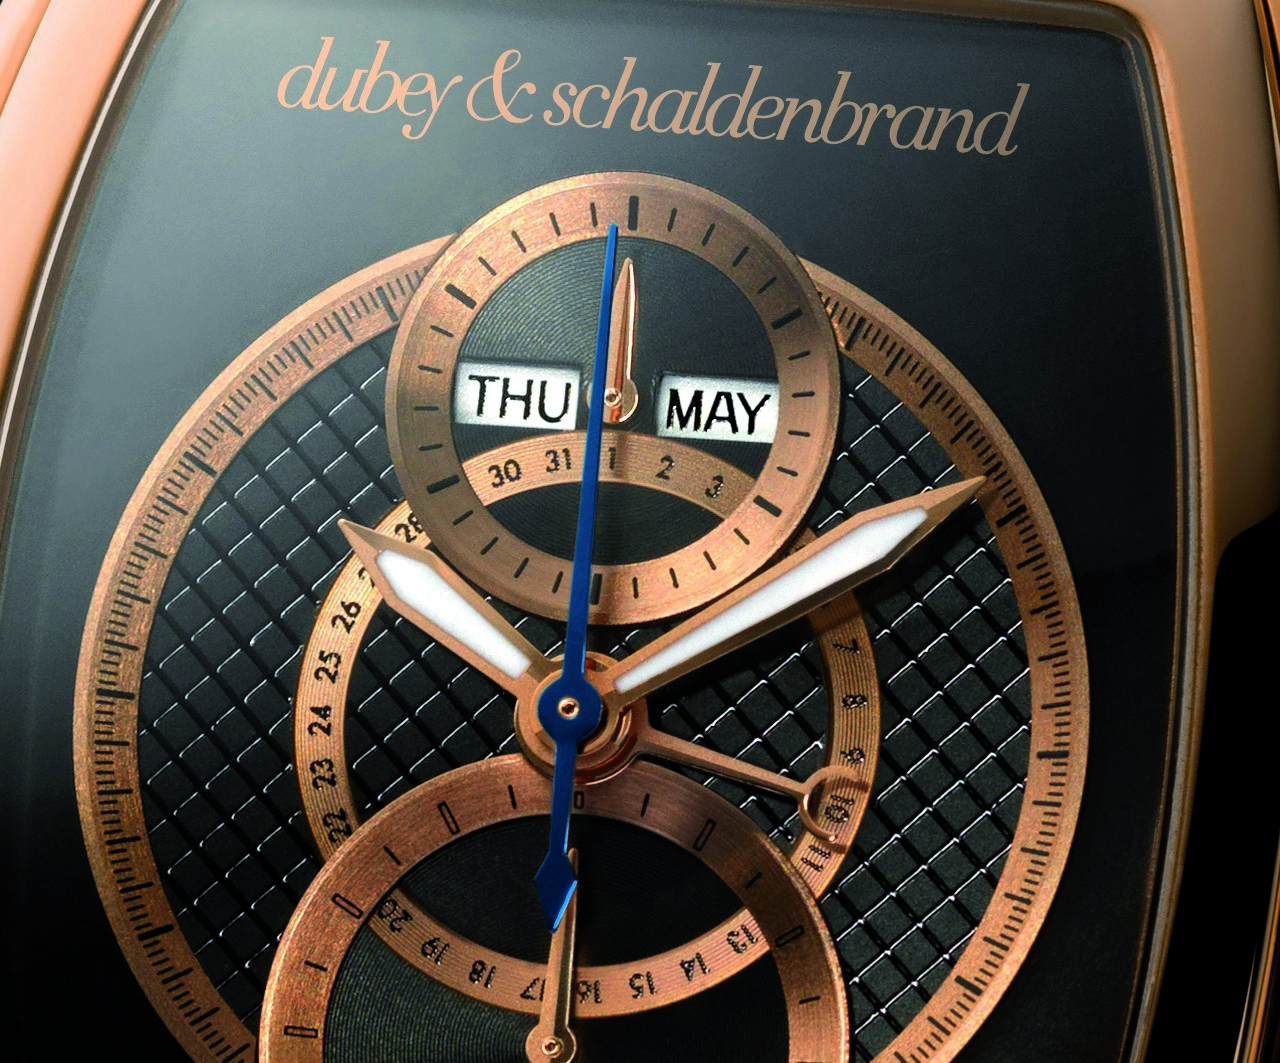 baselworld-2013-dubey-schaldenbrand-grand-dome-dt-rose-gold_0-100 2